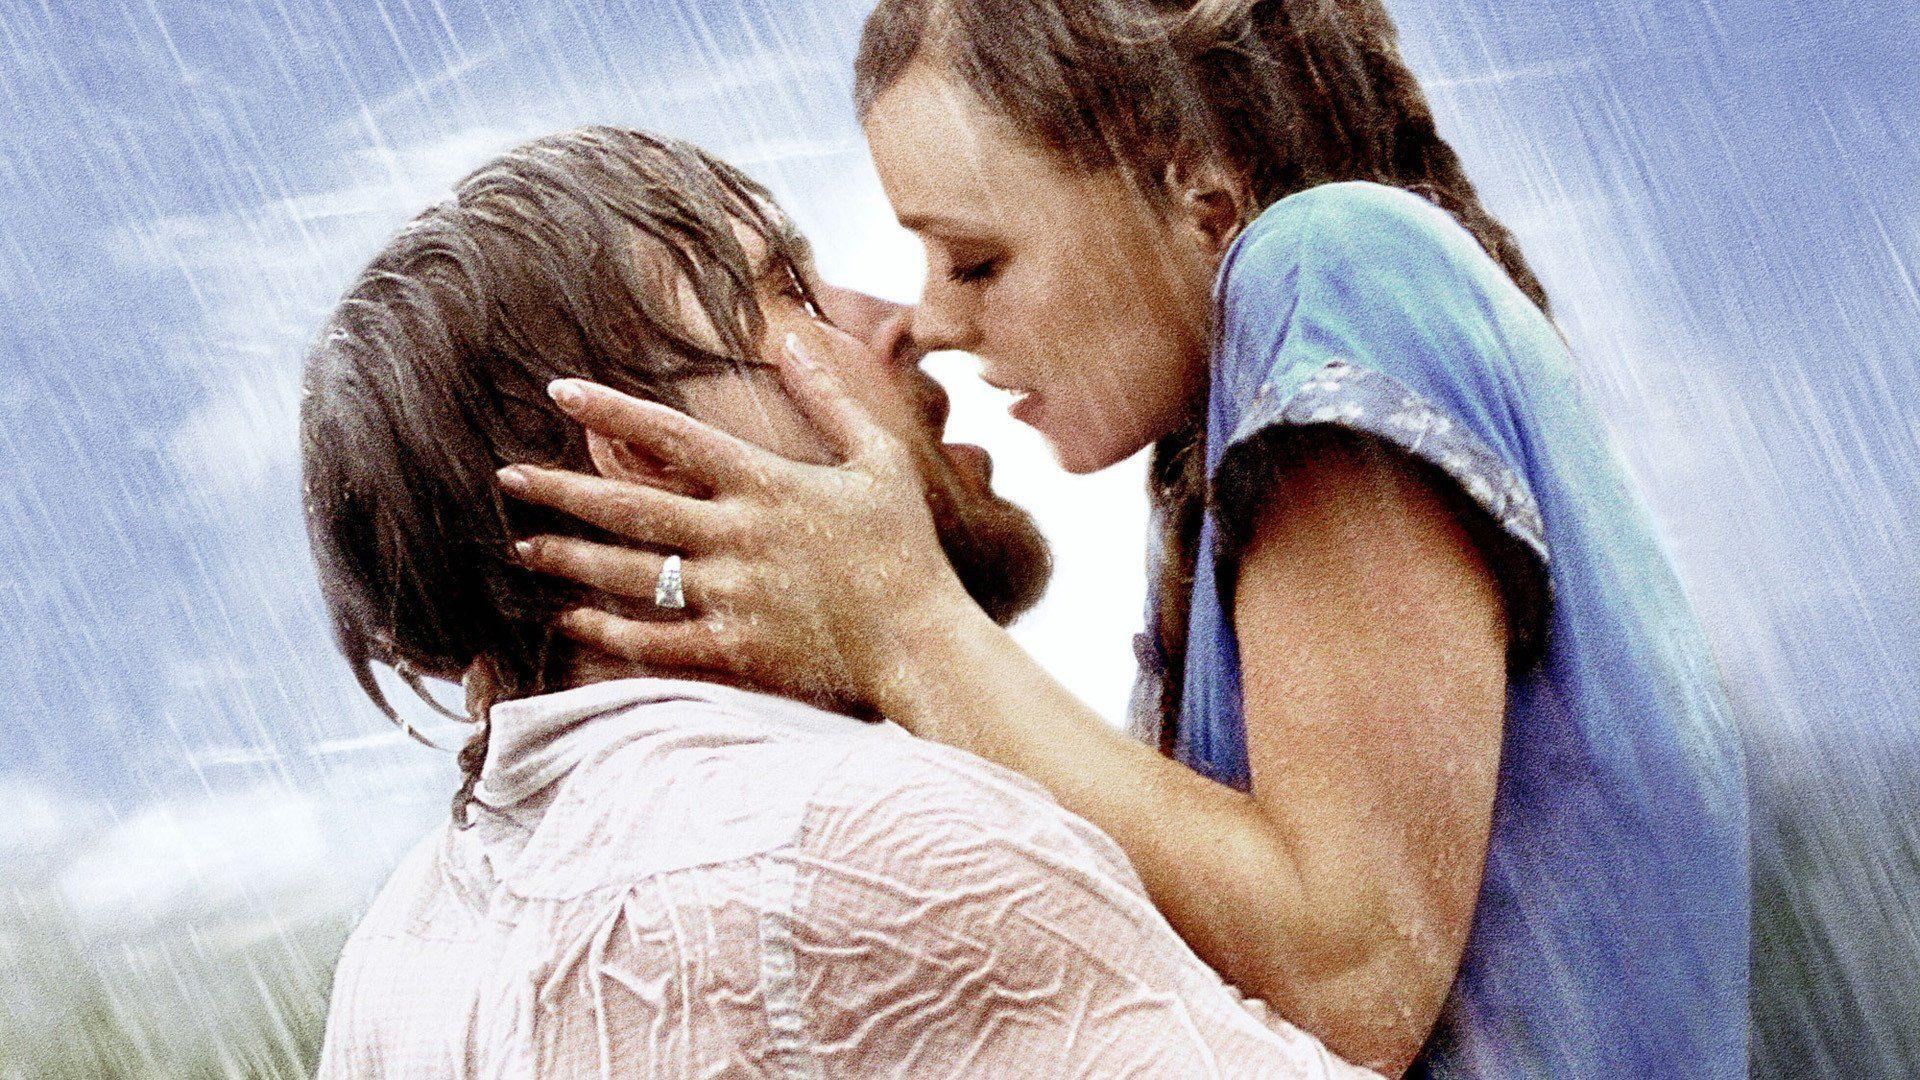 5 The Notebook HD Wallpapers